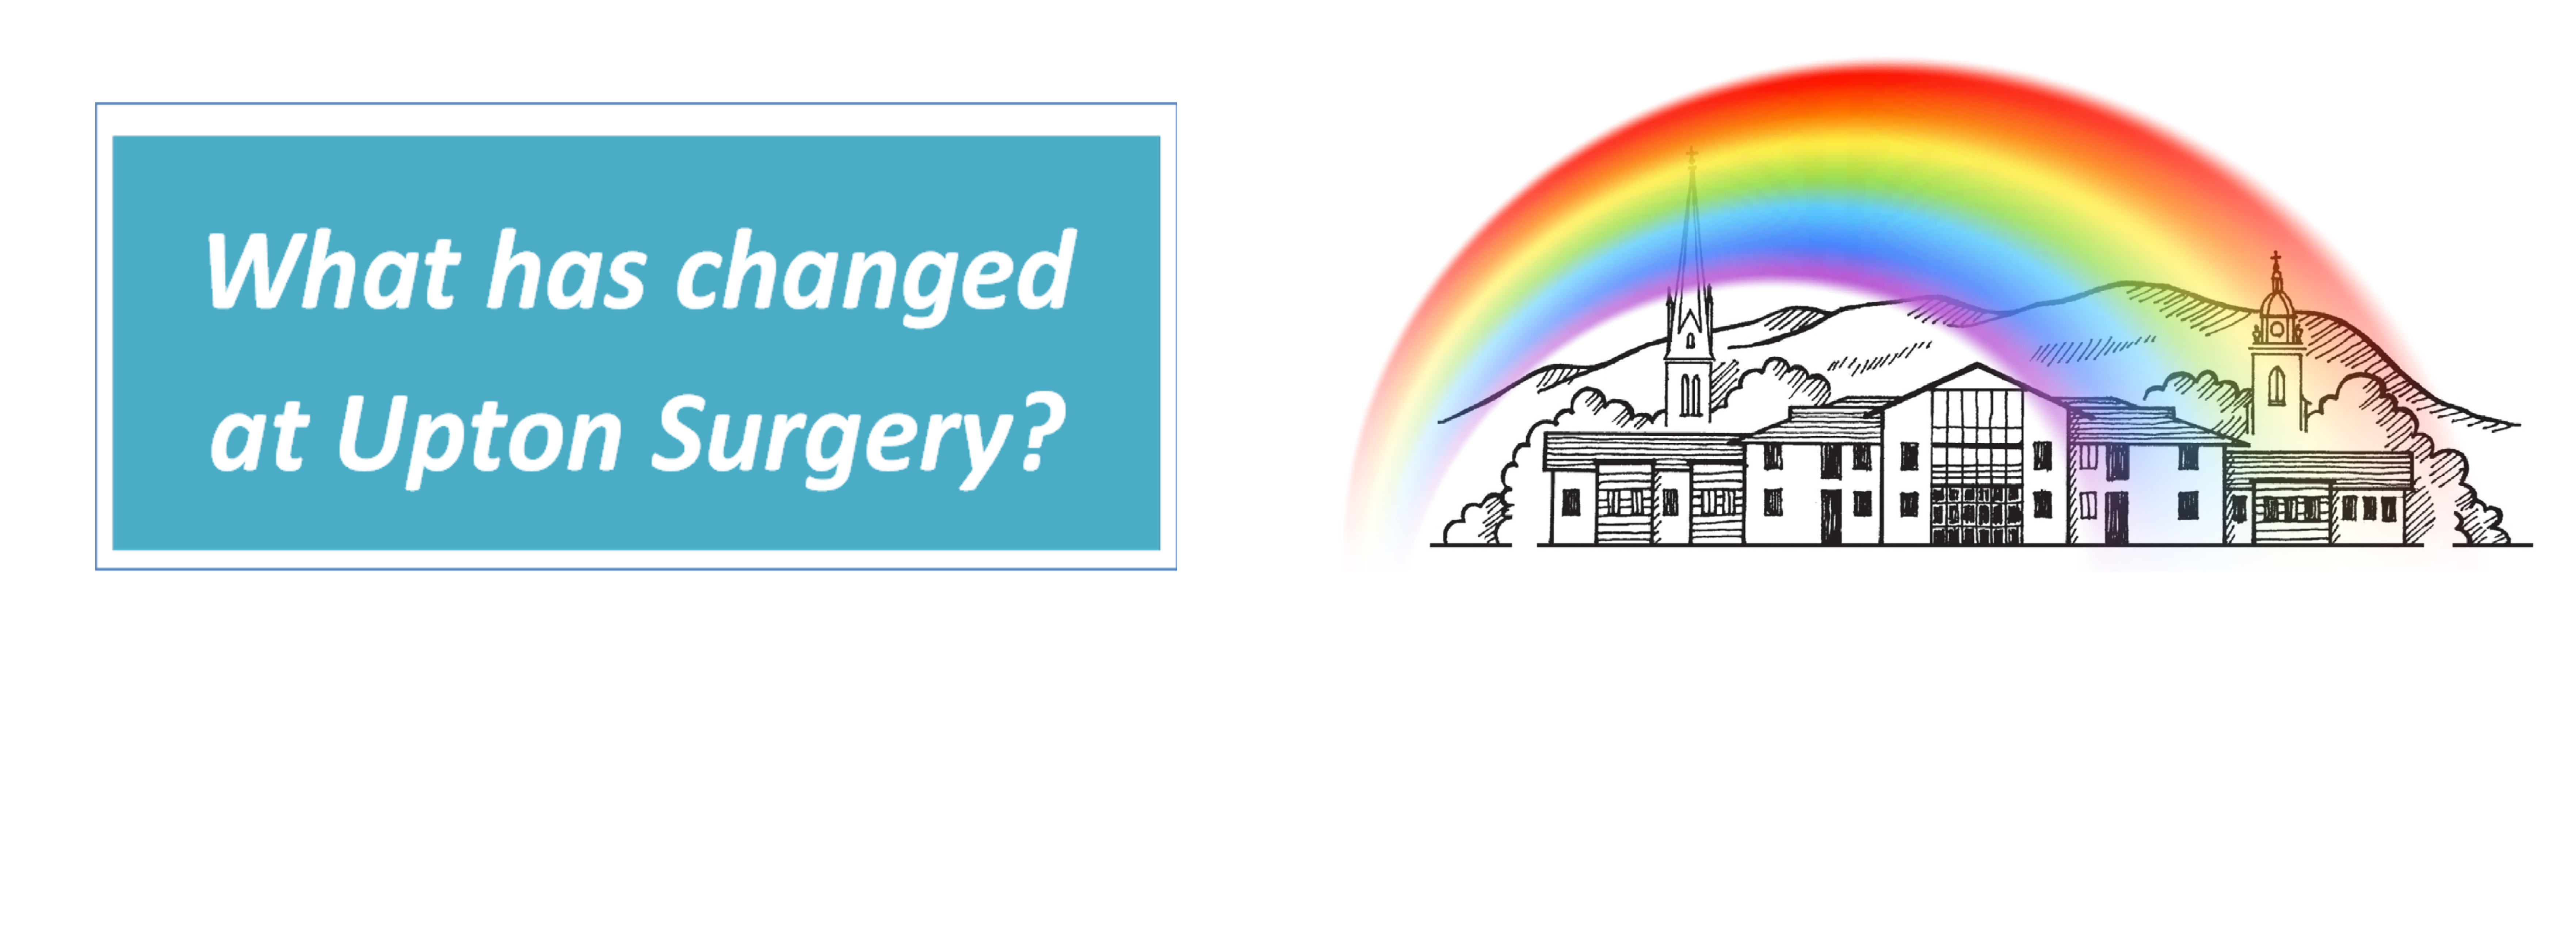 What has changed at Upton Surgery?